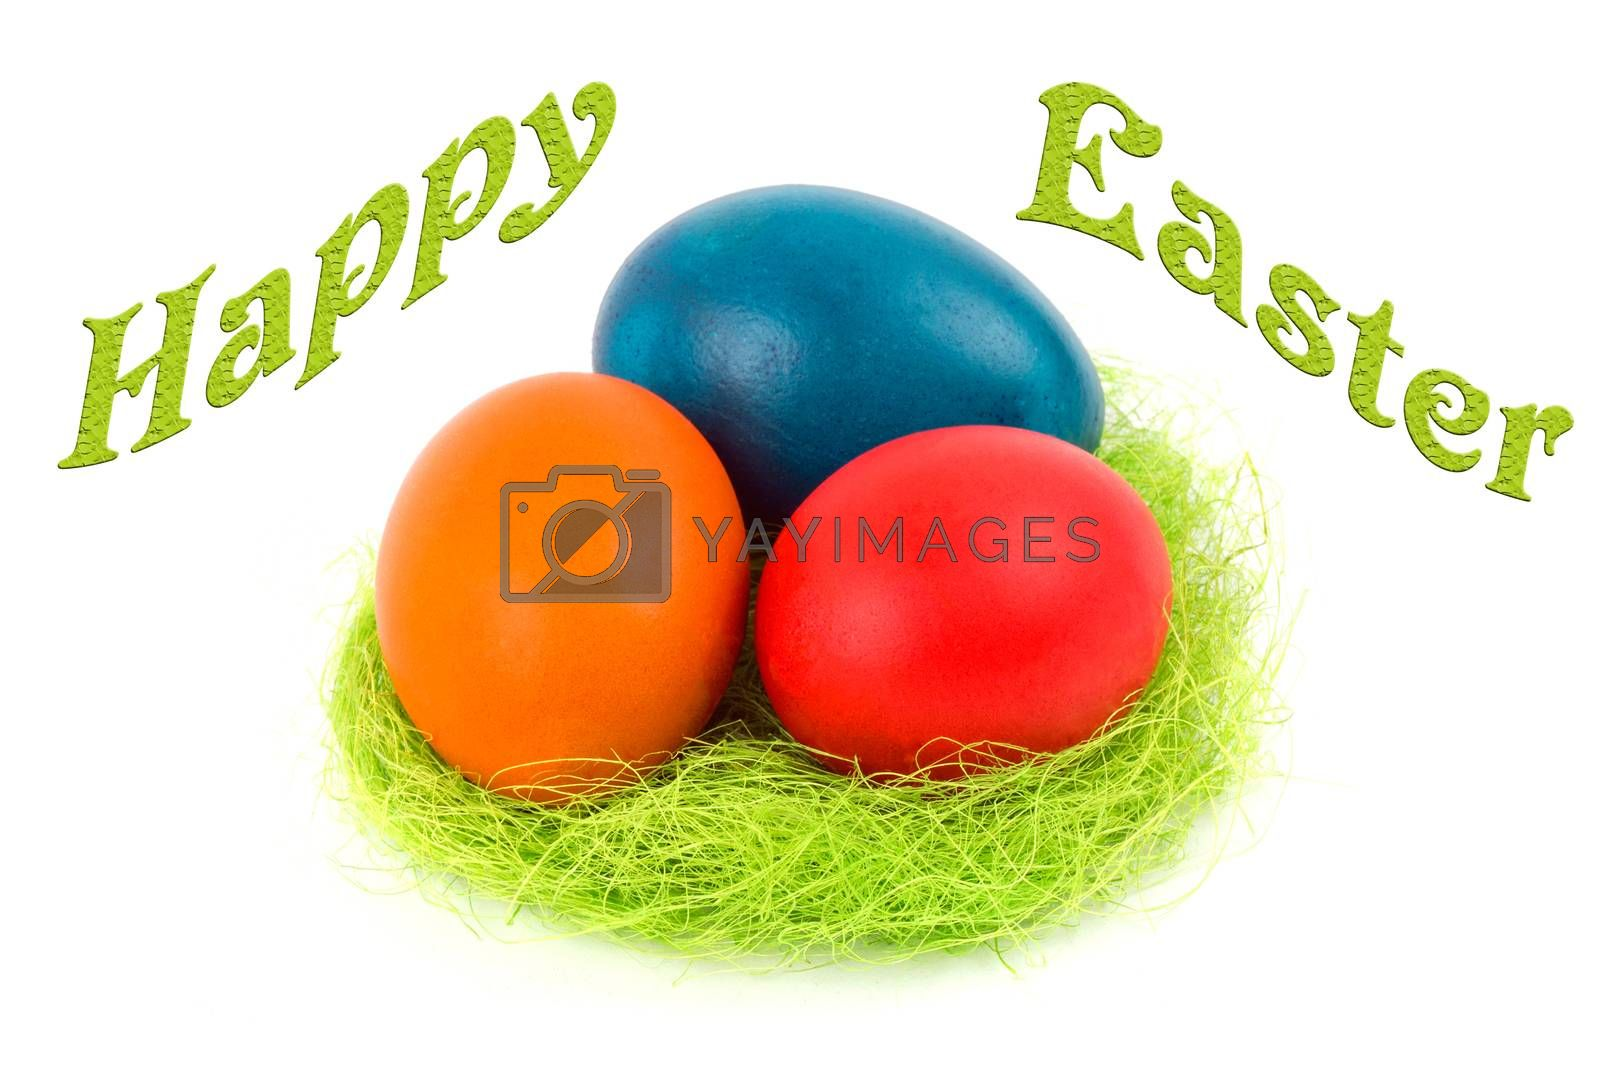 Happy Easter - Easter eggs in the nest on a white background